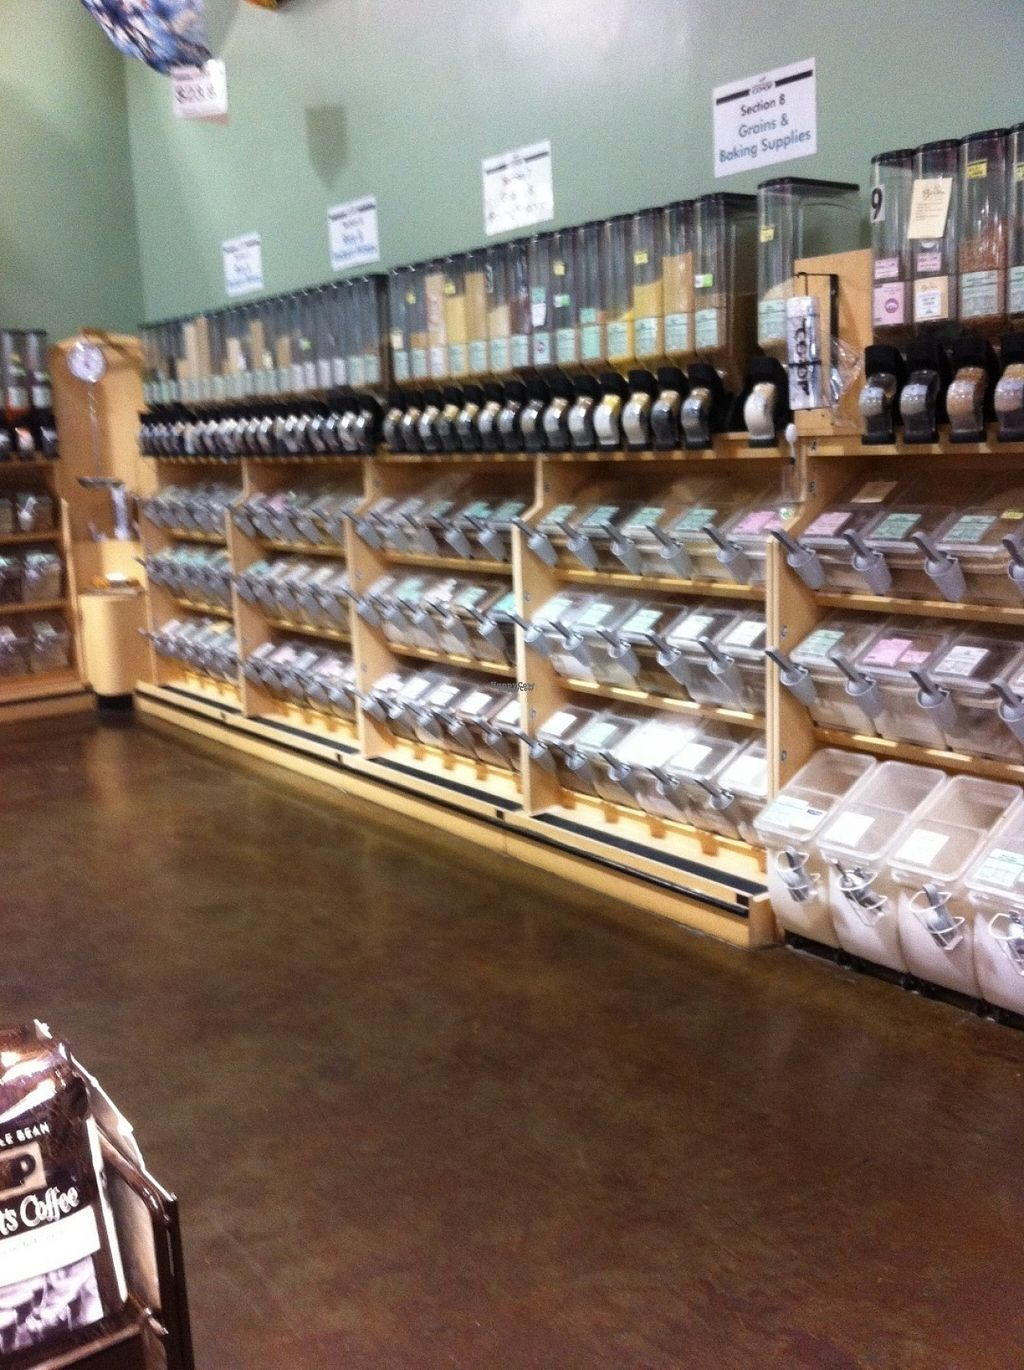 """Photo of North Coast Co-op  by <a href=""""/members/profile/BananaAddict"""">BananaAddict</a> <br/>One section of bulk <br/> August 15, 2016  - <a href='/contact/abuse/image/1511/169149'>Report</a>"""